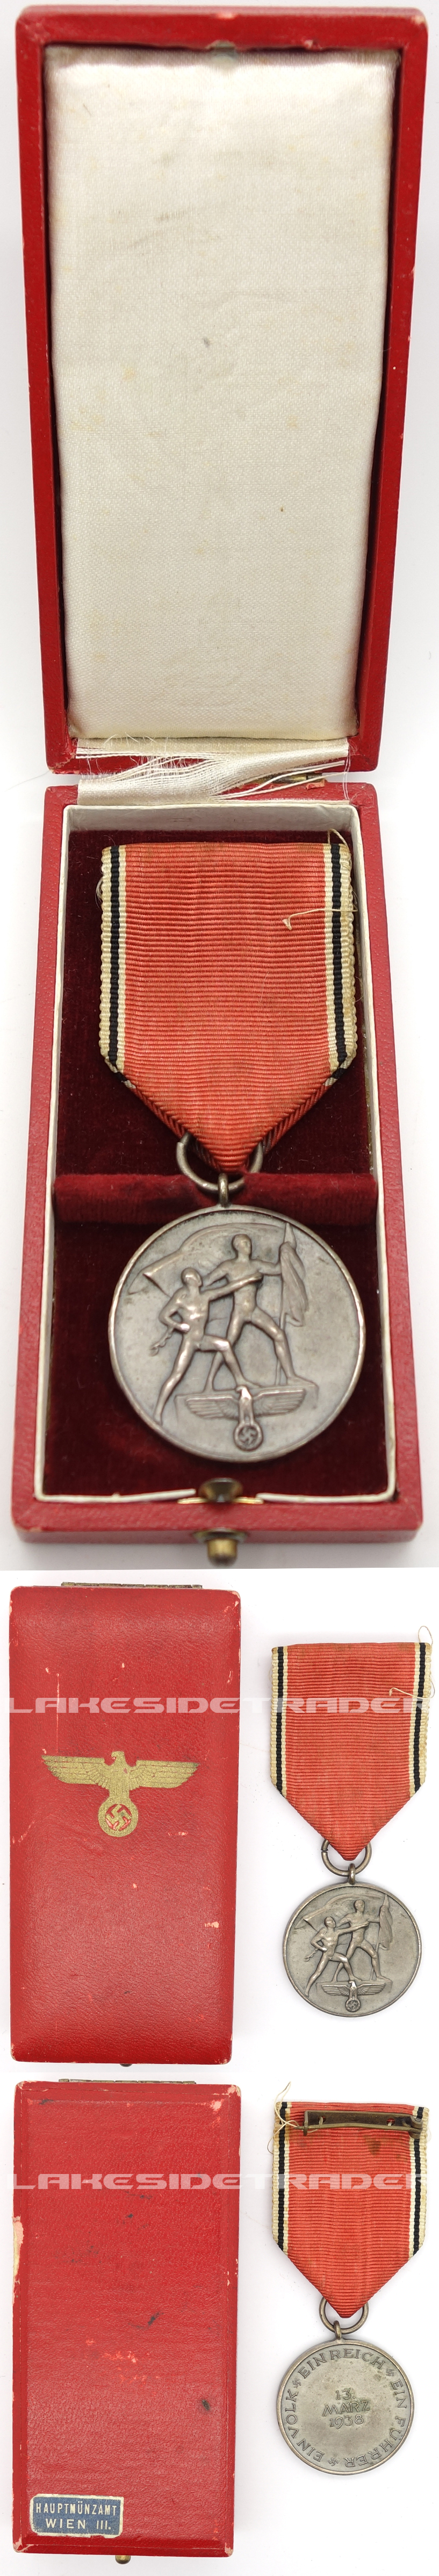 Cased Anschluss Commemorative Medal by Hauptmunzamt